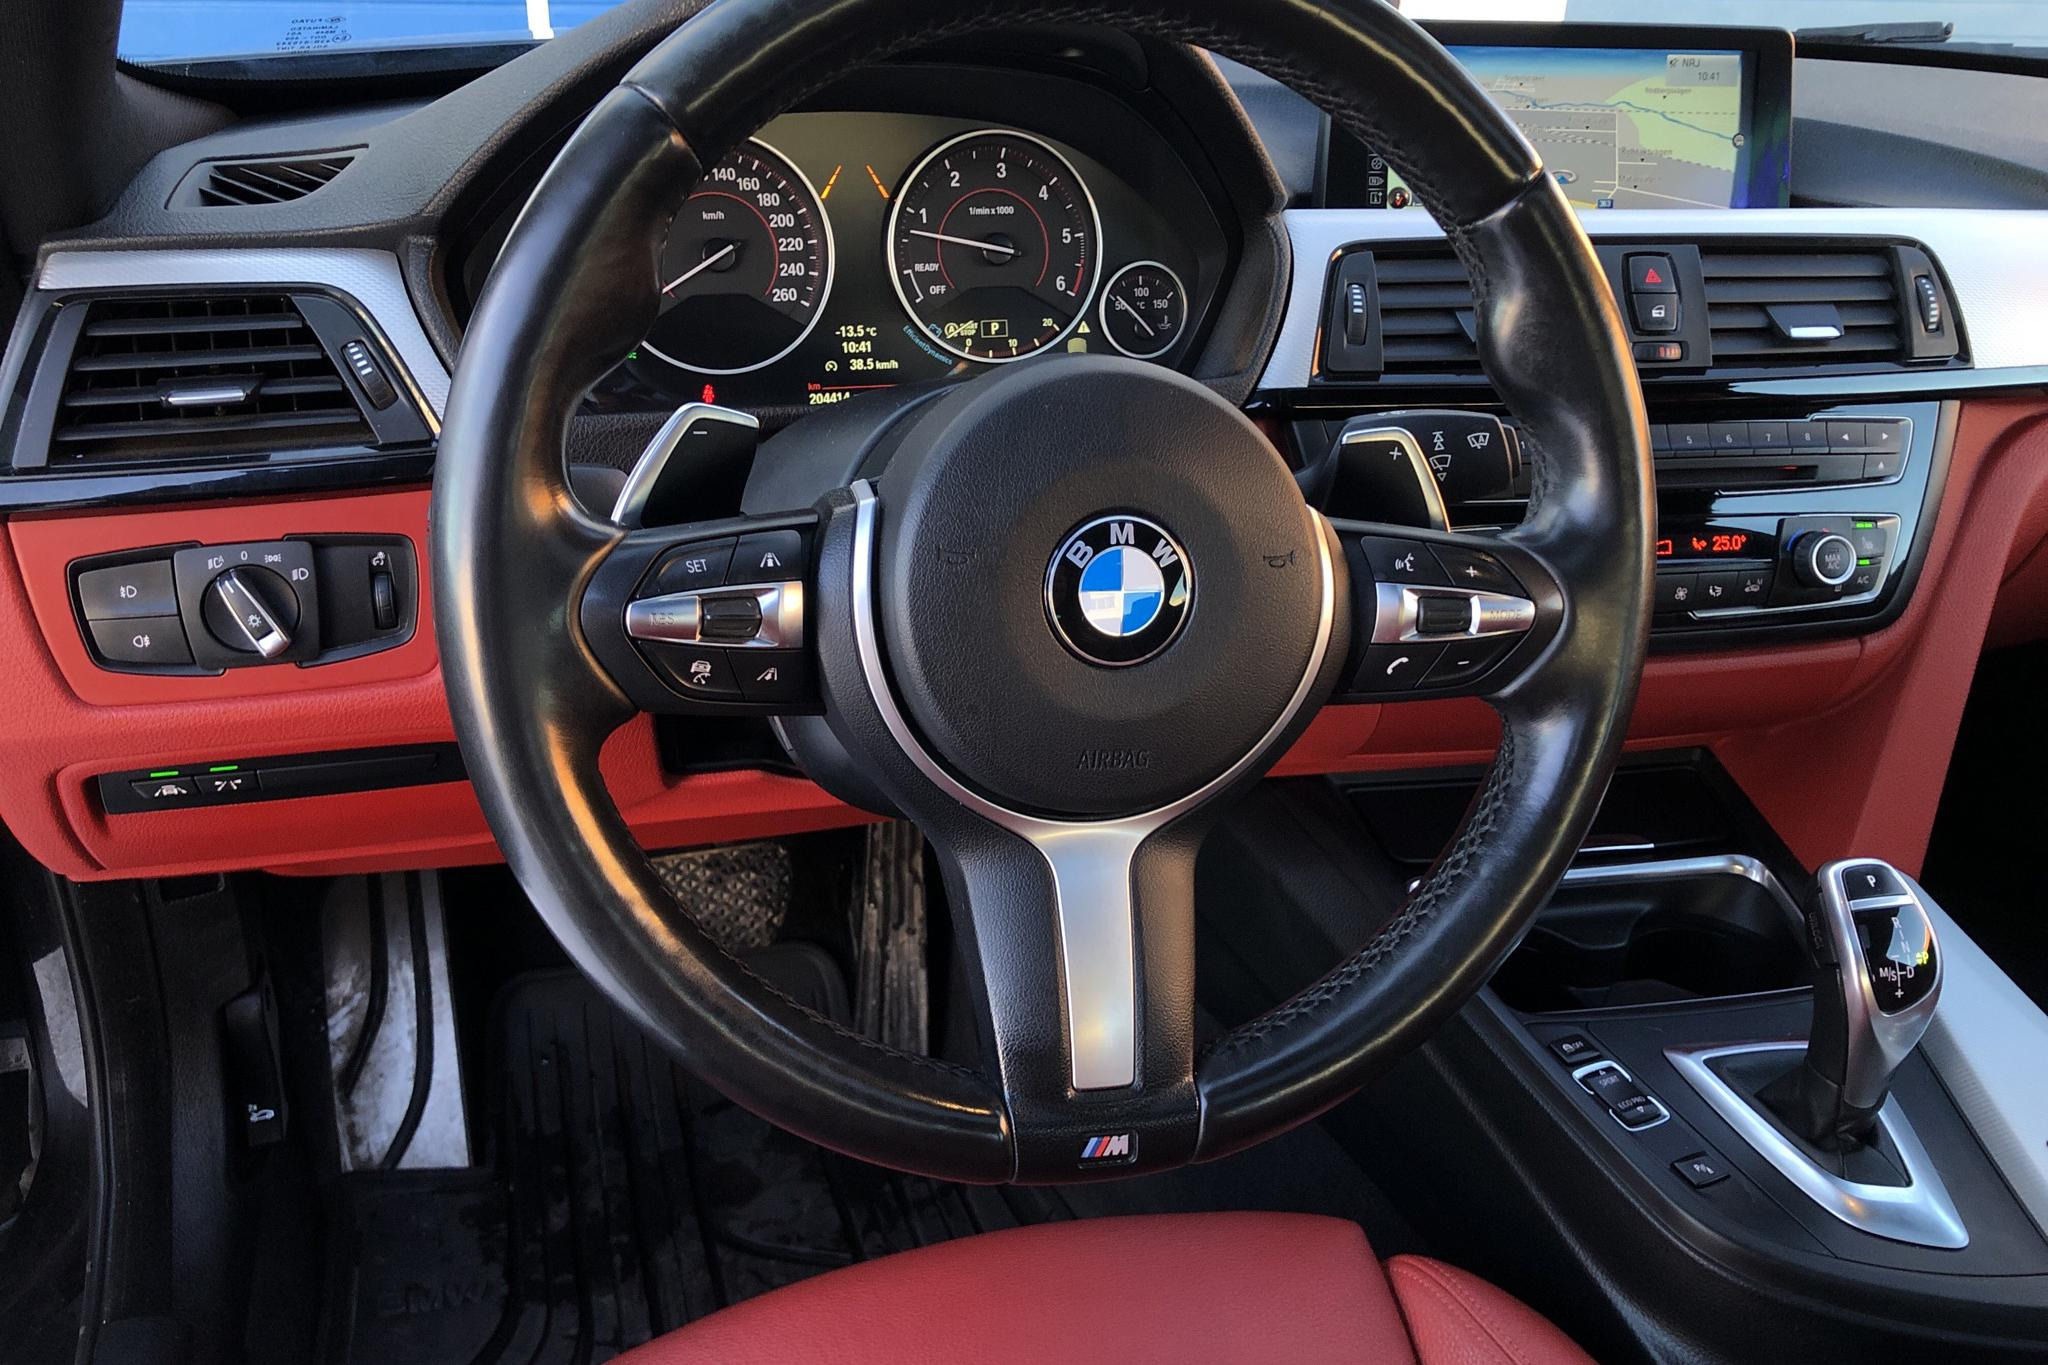 BMW 435d xDrive Coupé, F32 (313hk) - 204 430 km - Automatic - black - 2014